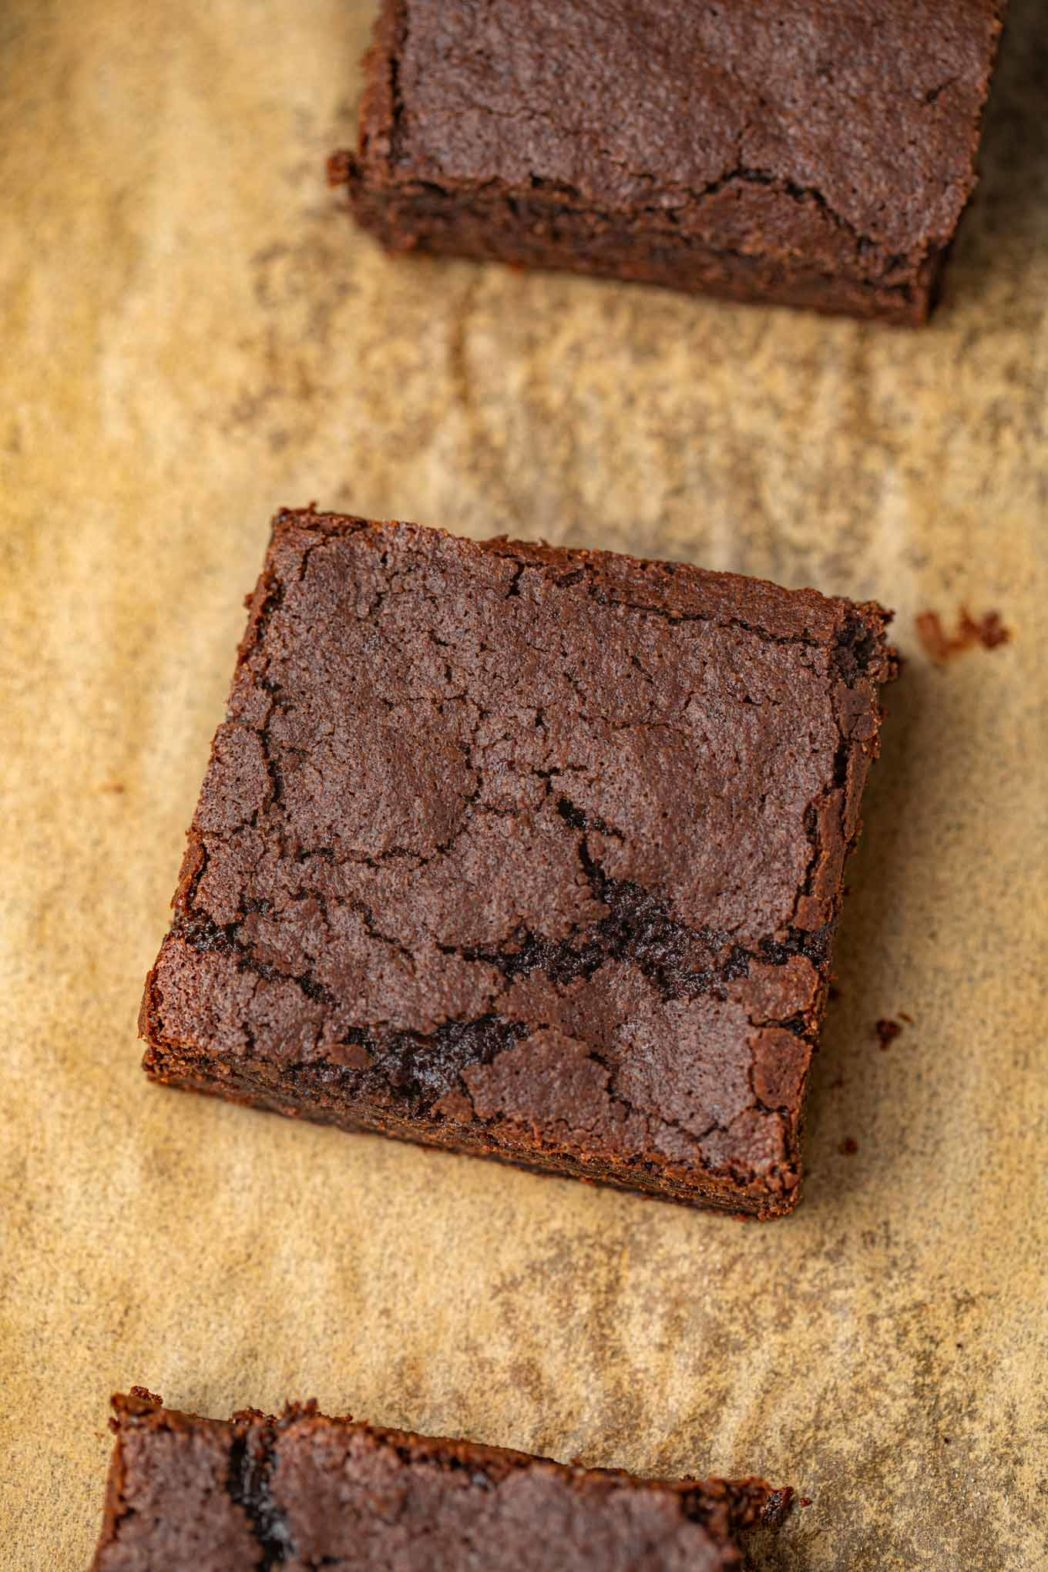 Piece of brownie